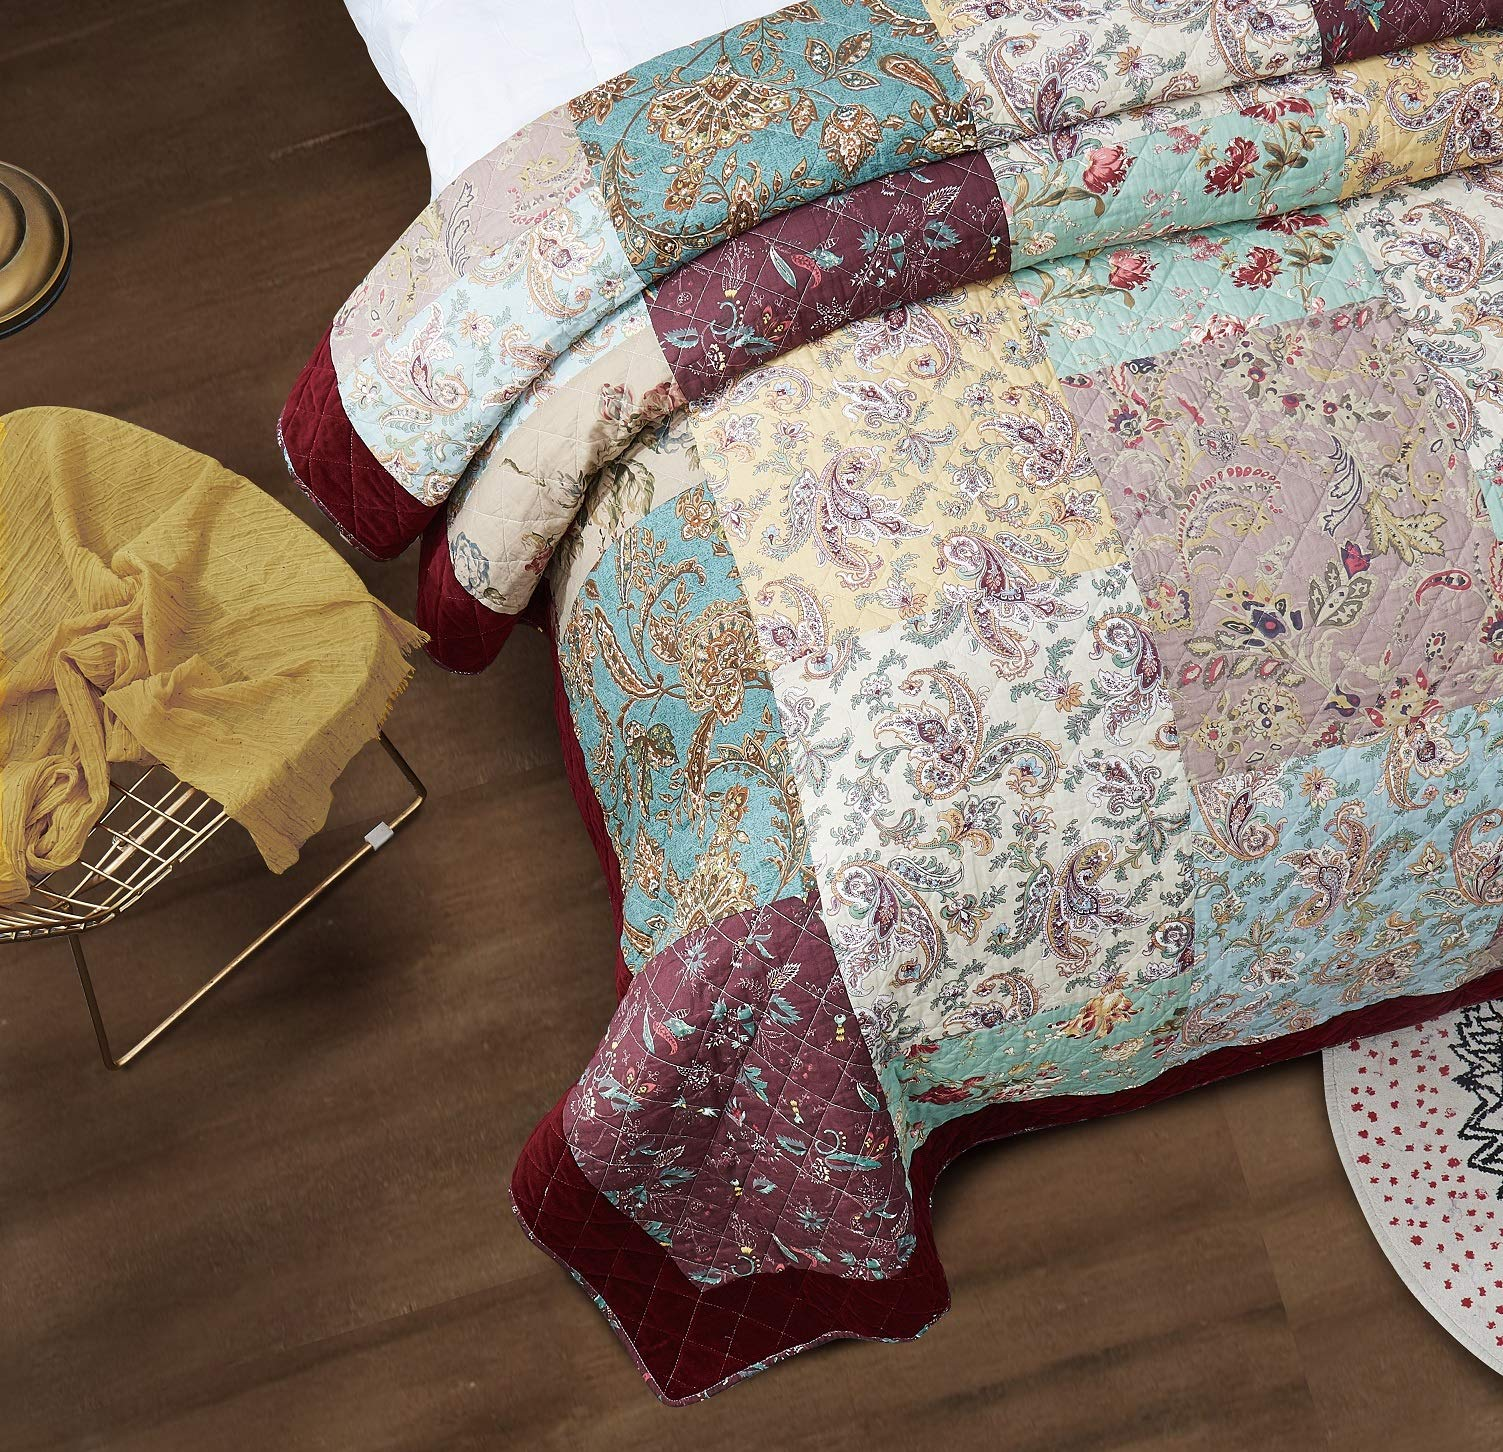 DaDa Bedding Bohemian Patchwork Bedspread - Burgundy Wine Velvety Trim - Vintage Floral Roses Paisley - Bright Vibrant Multi-Colorful Quilted Set - Queen - 3-Pieces by DaDa Bedding Collection (Image #2)